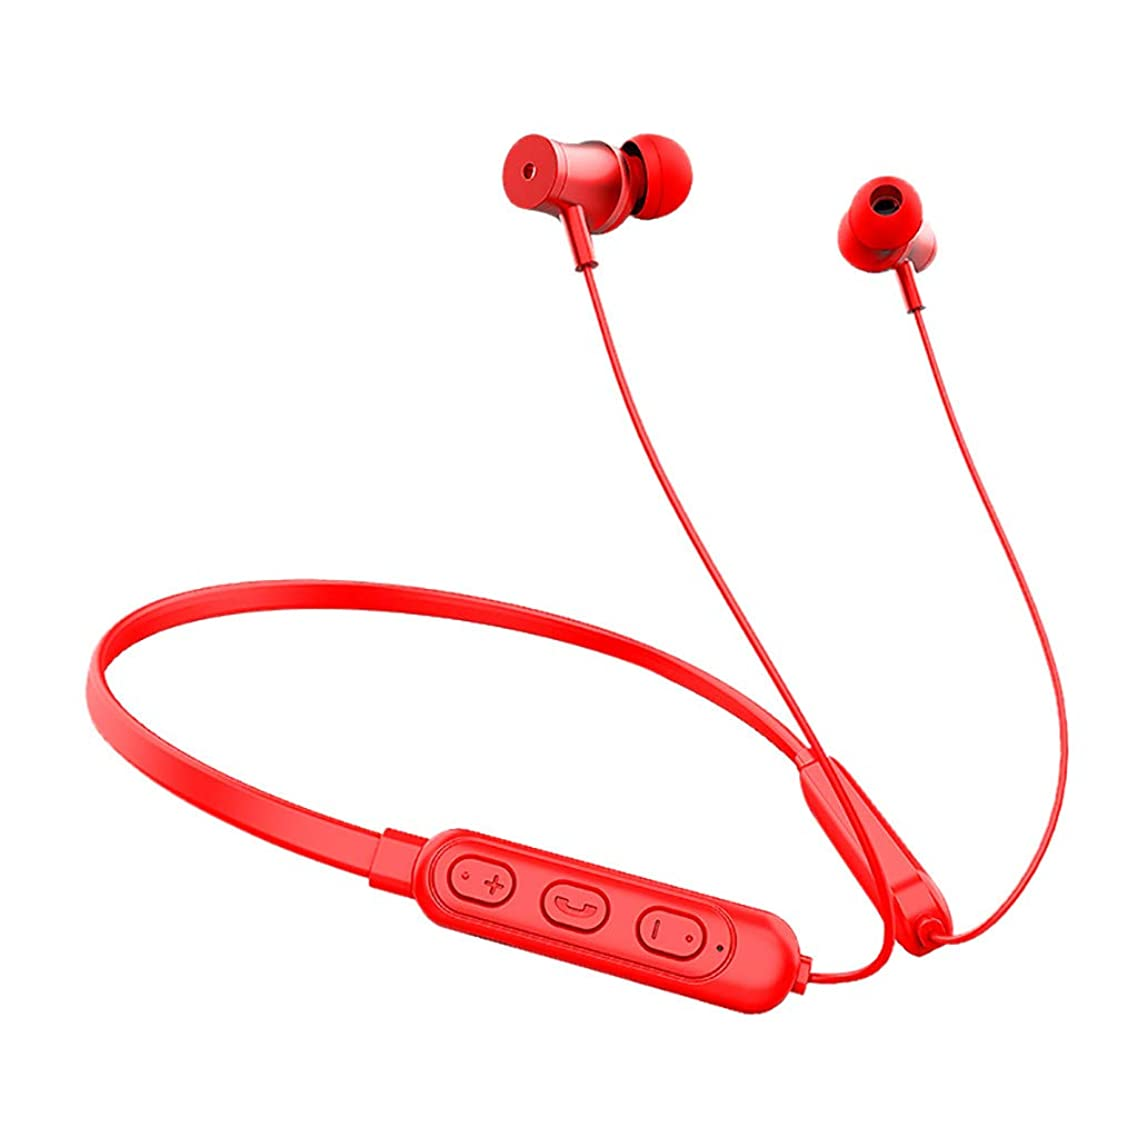 CreazyBee Wireless Earphones Magnetic Wireless Sport Headphone for iPhone/Android Headset (Red)